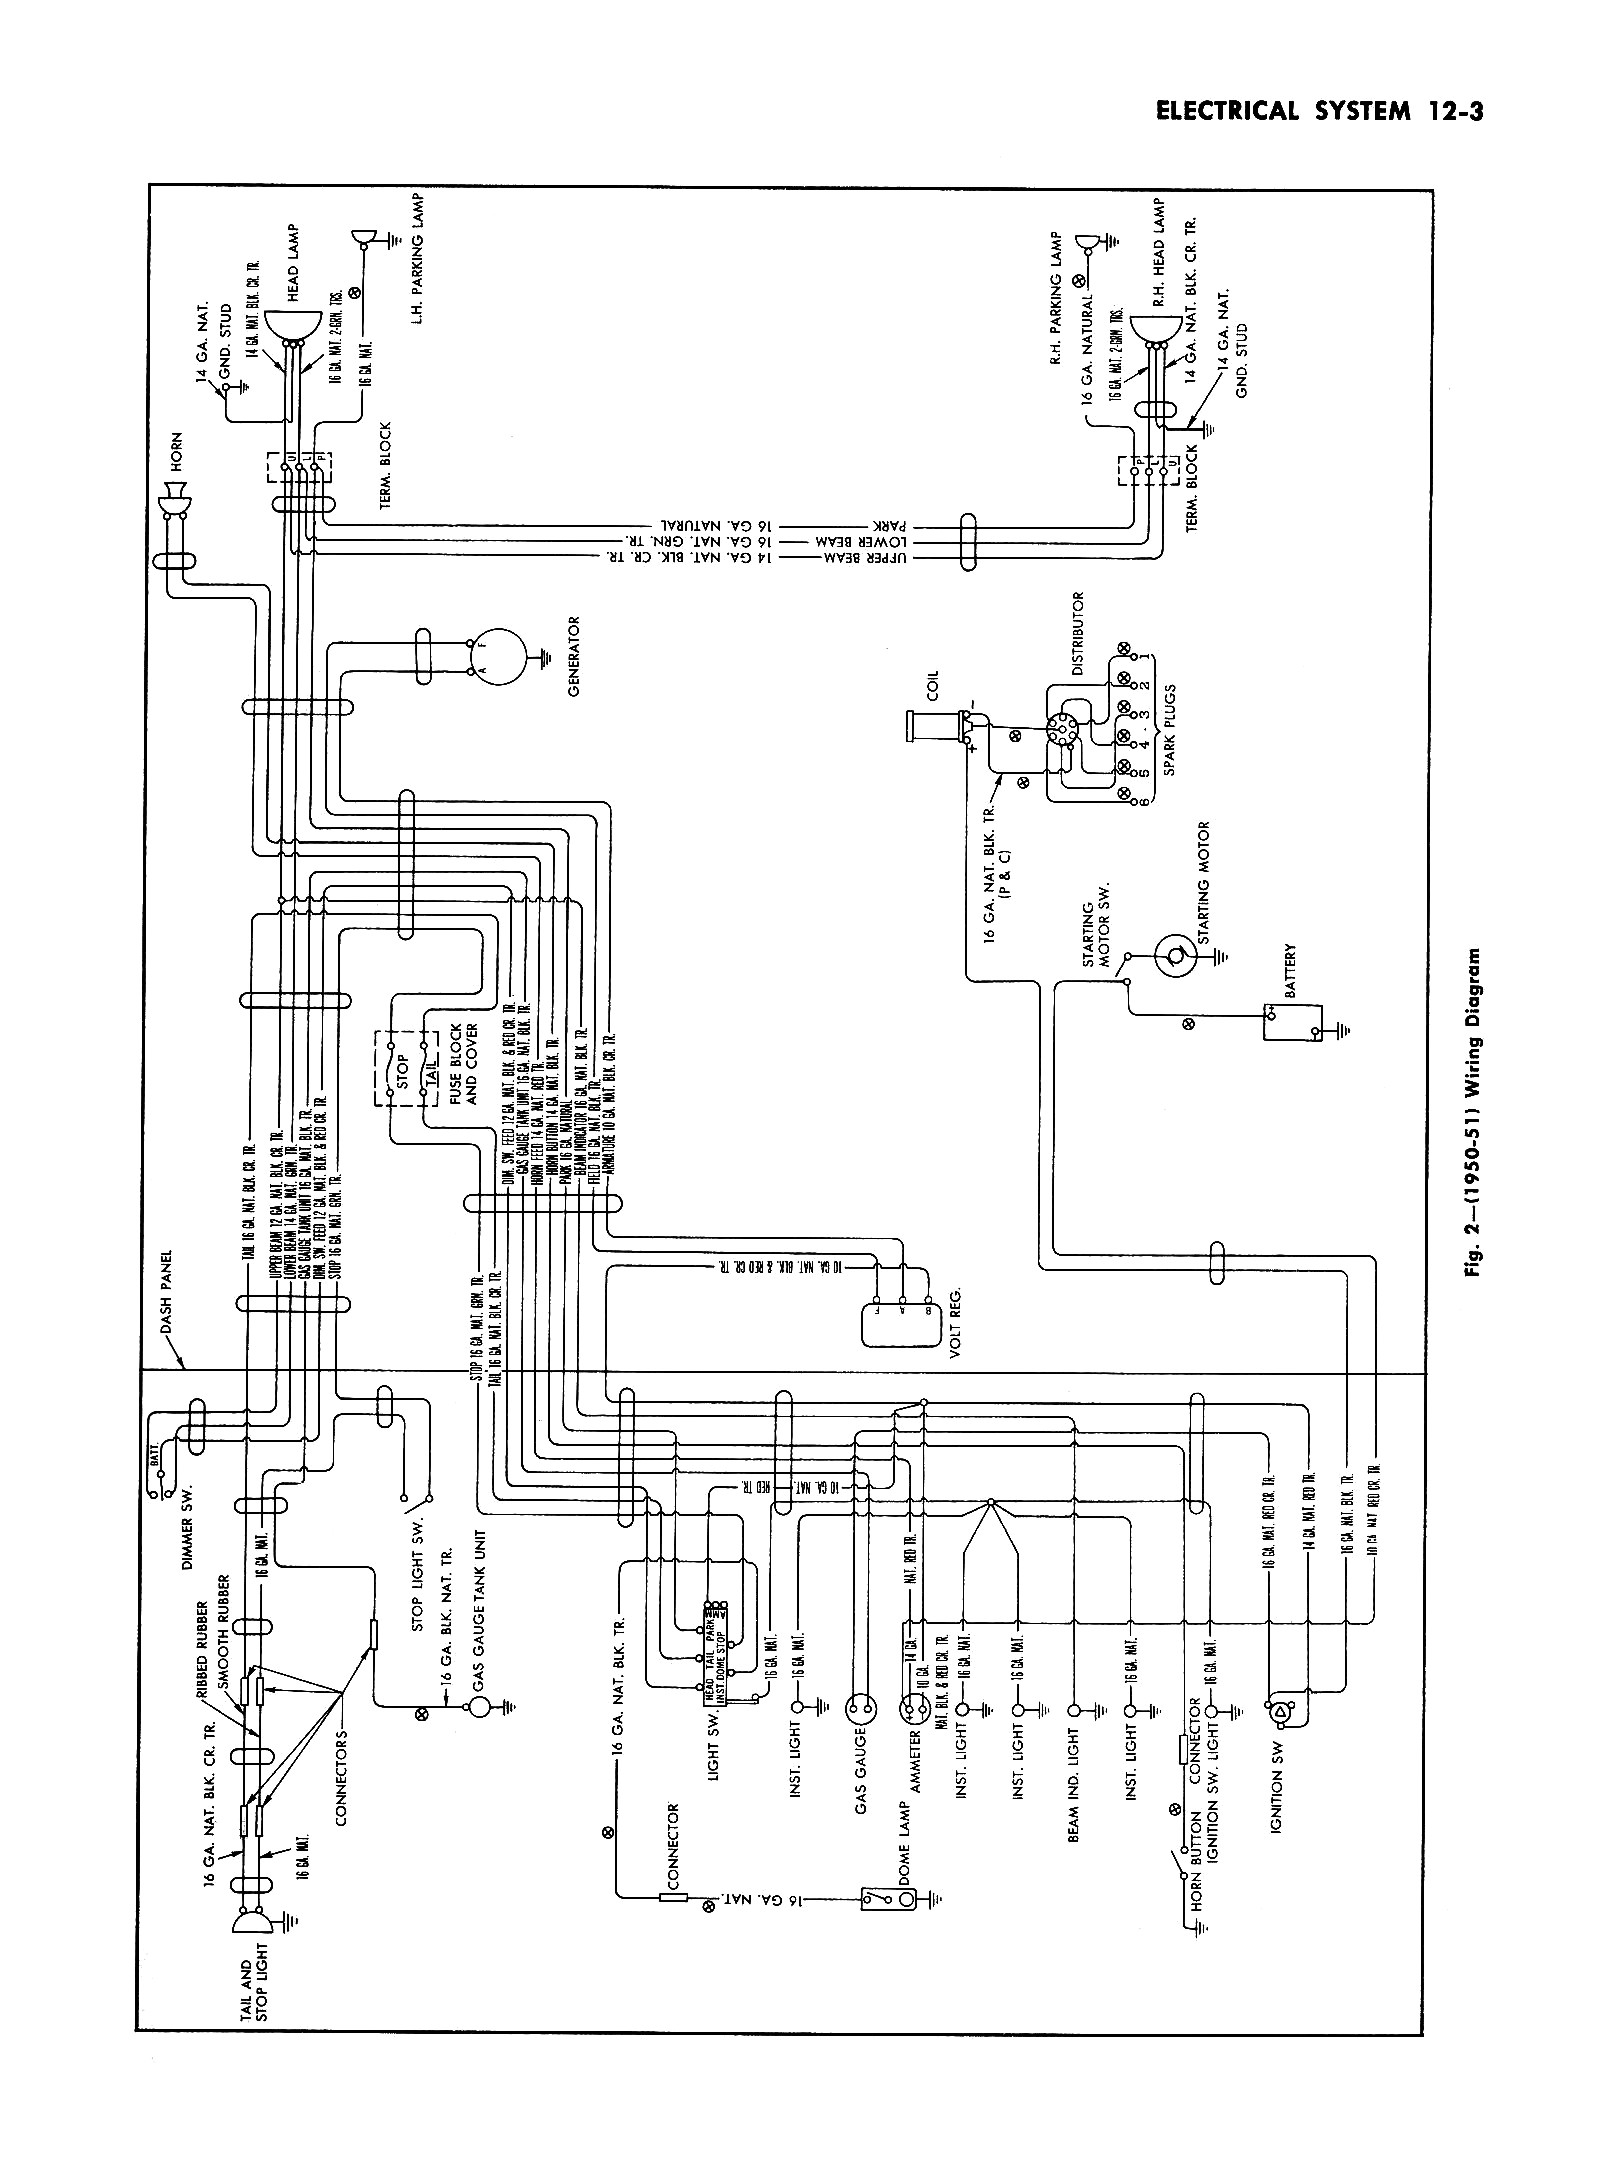 50car1 chevy wiring diagrams 1953 plymouth wiring diagram at edmiracle.co